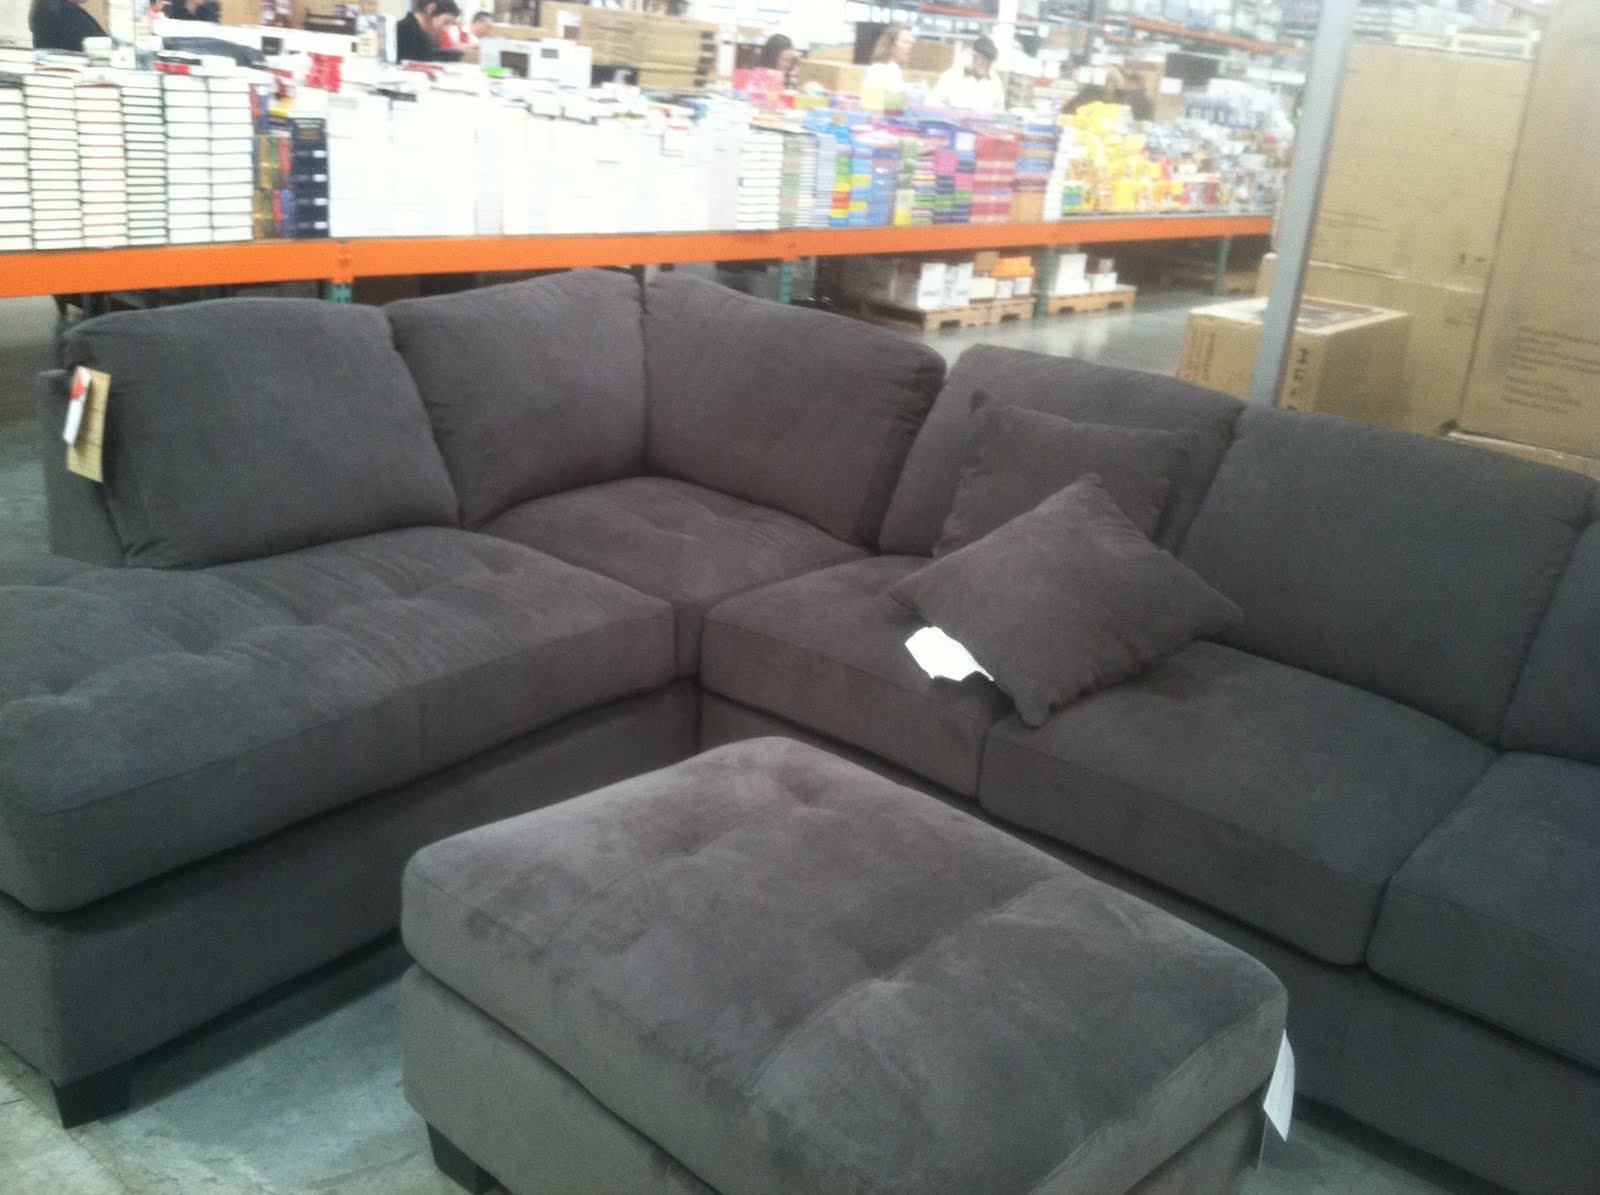 Sofa At Costco Grey Couch From Costco Similar To Ones We